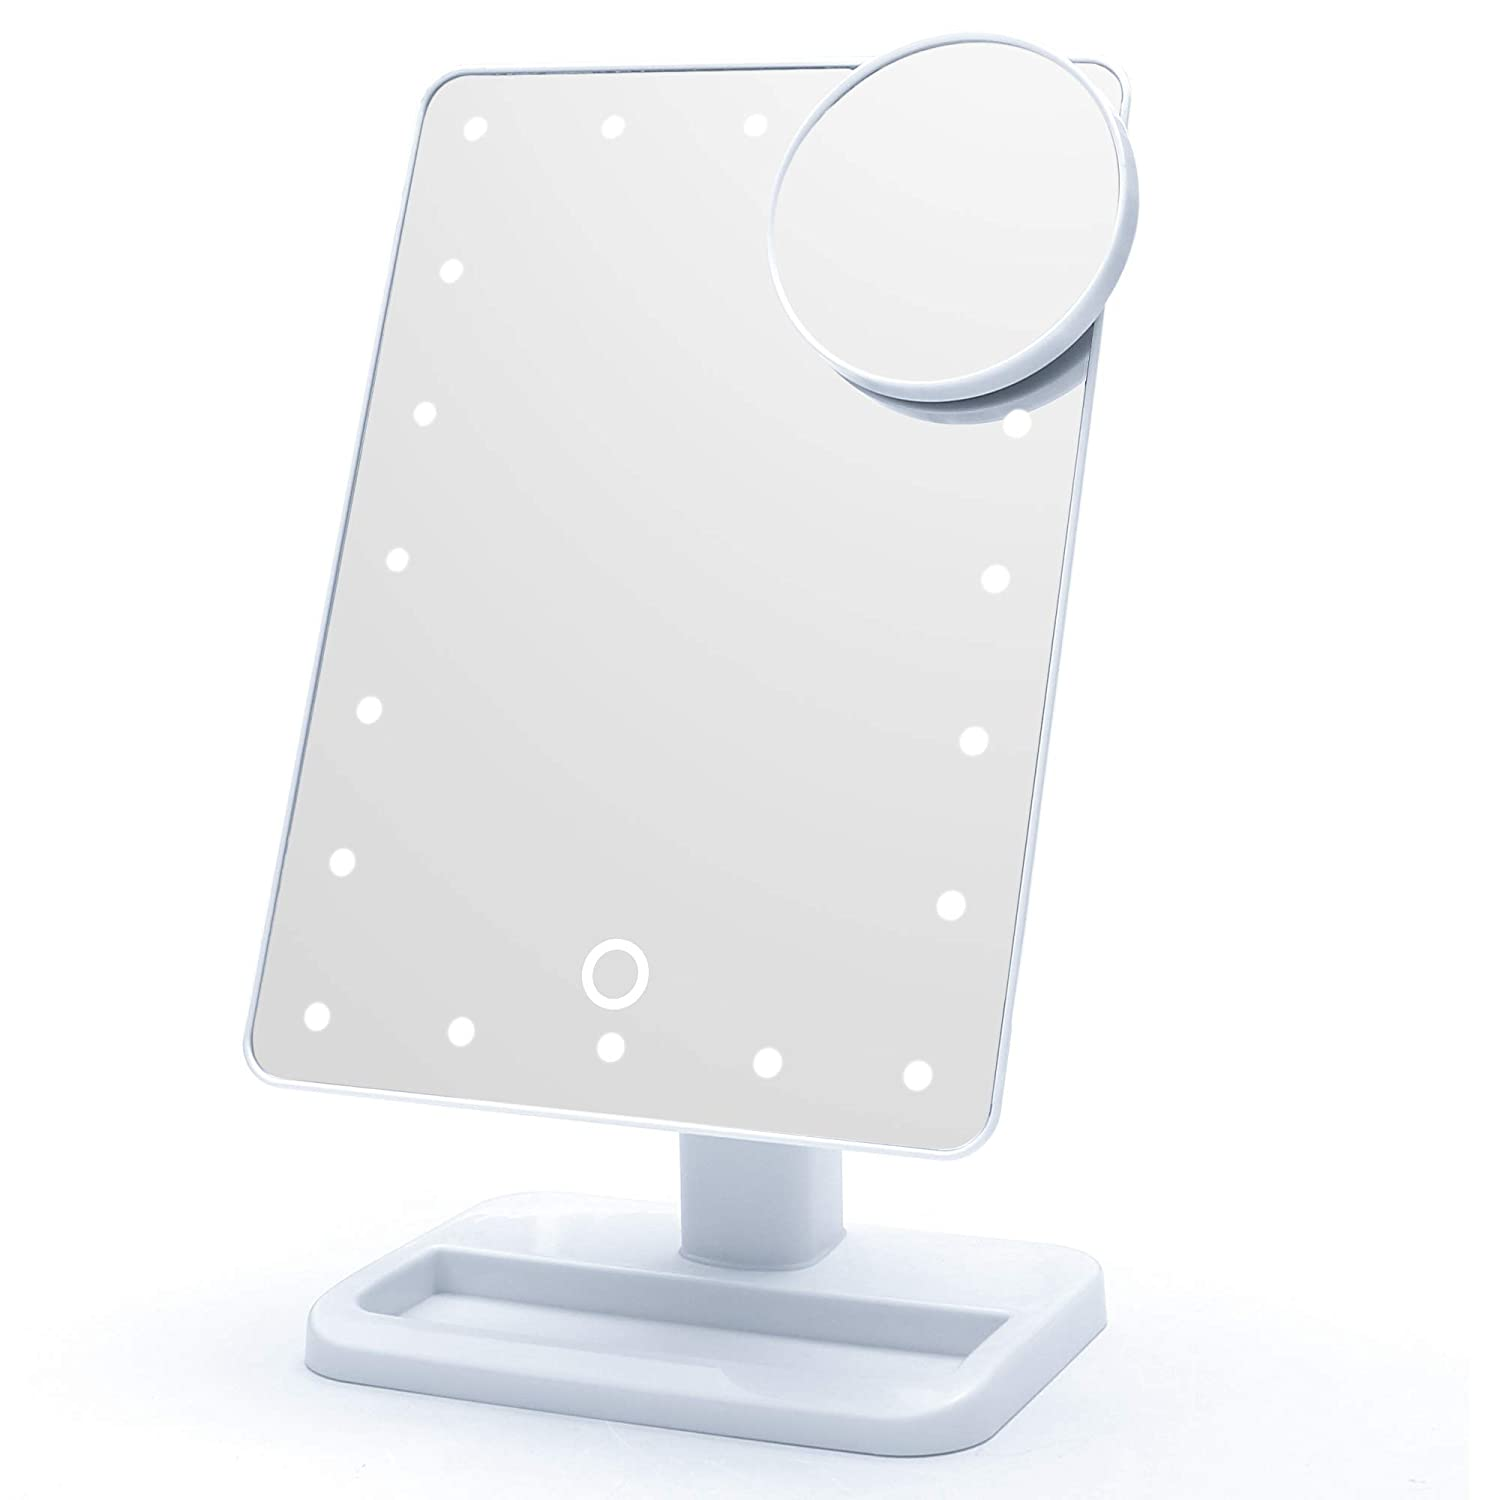 Qivange Makeup Vanity Mirror, Adjustable 20pcs LED Natural Lights with Touch Screen, 180 Free Rotation with Removable 10x Magnifying Countertop Vanity Mirror (White)